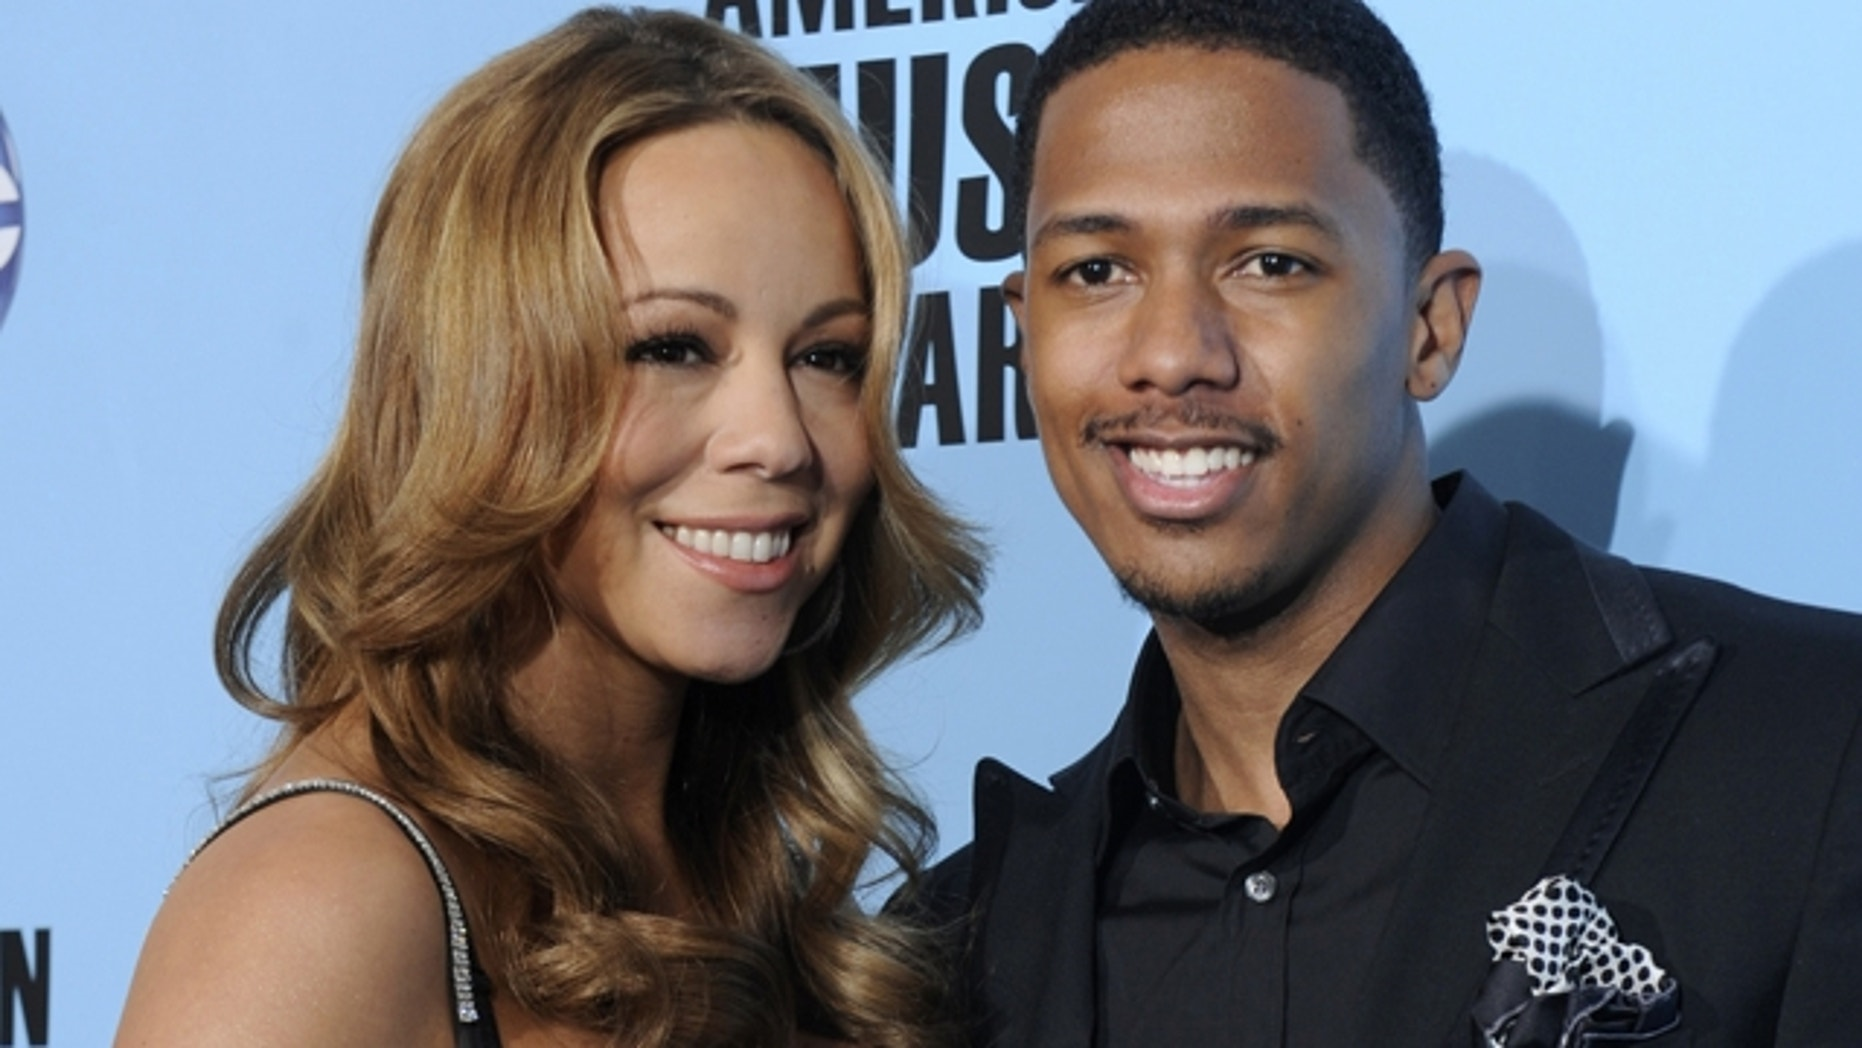 NFL Draft, Mariah Carey has Twins and the Royal Honeymoon